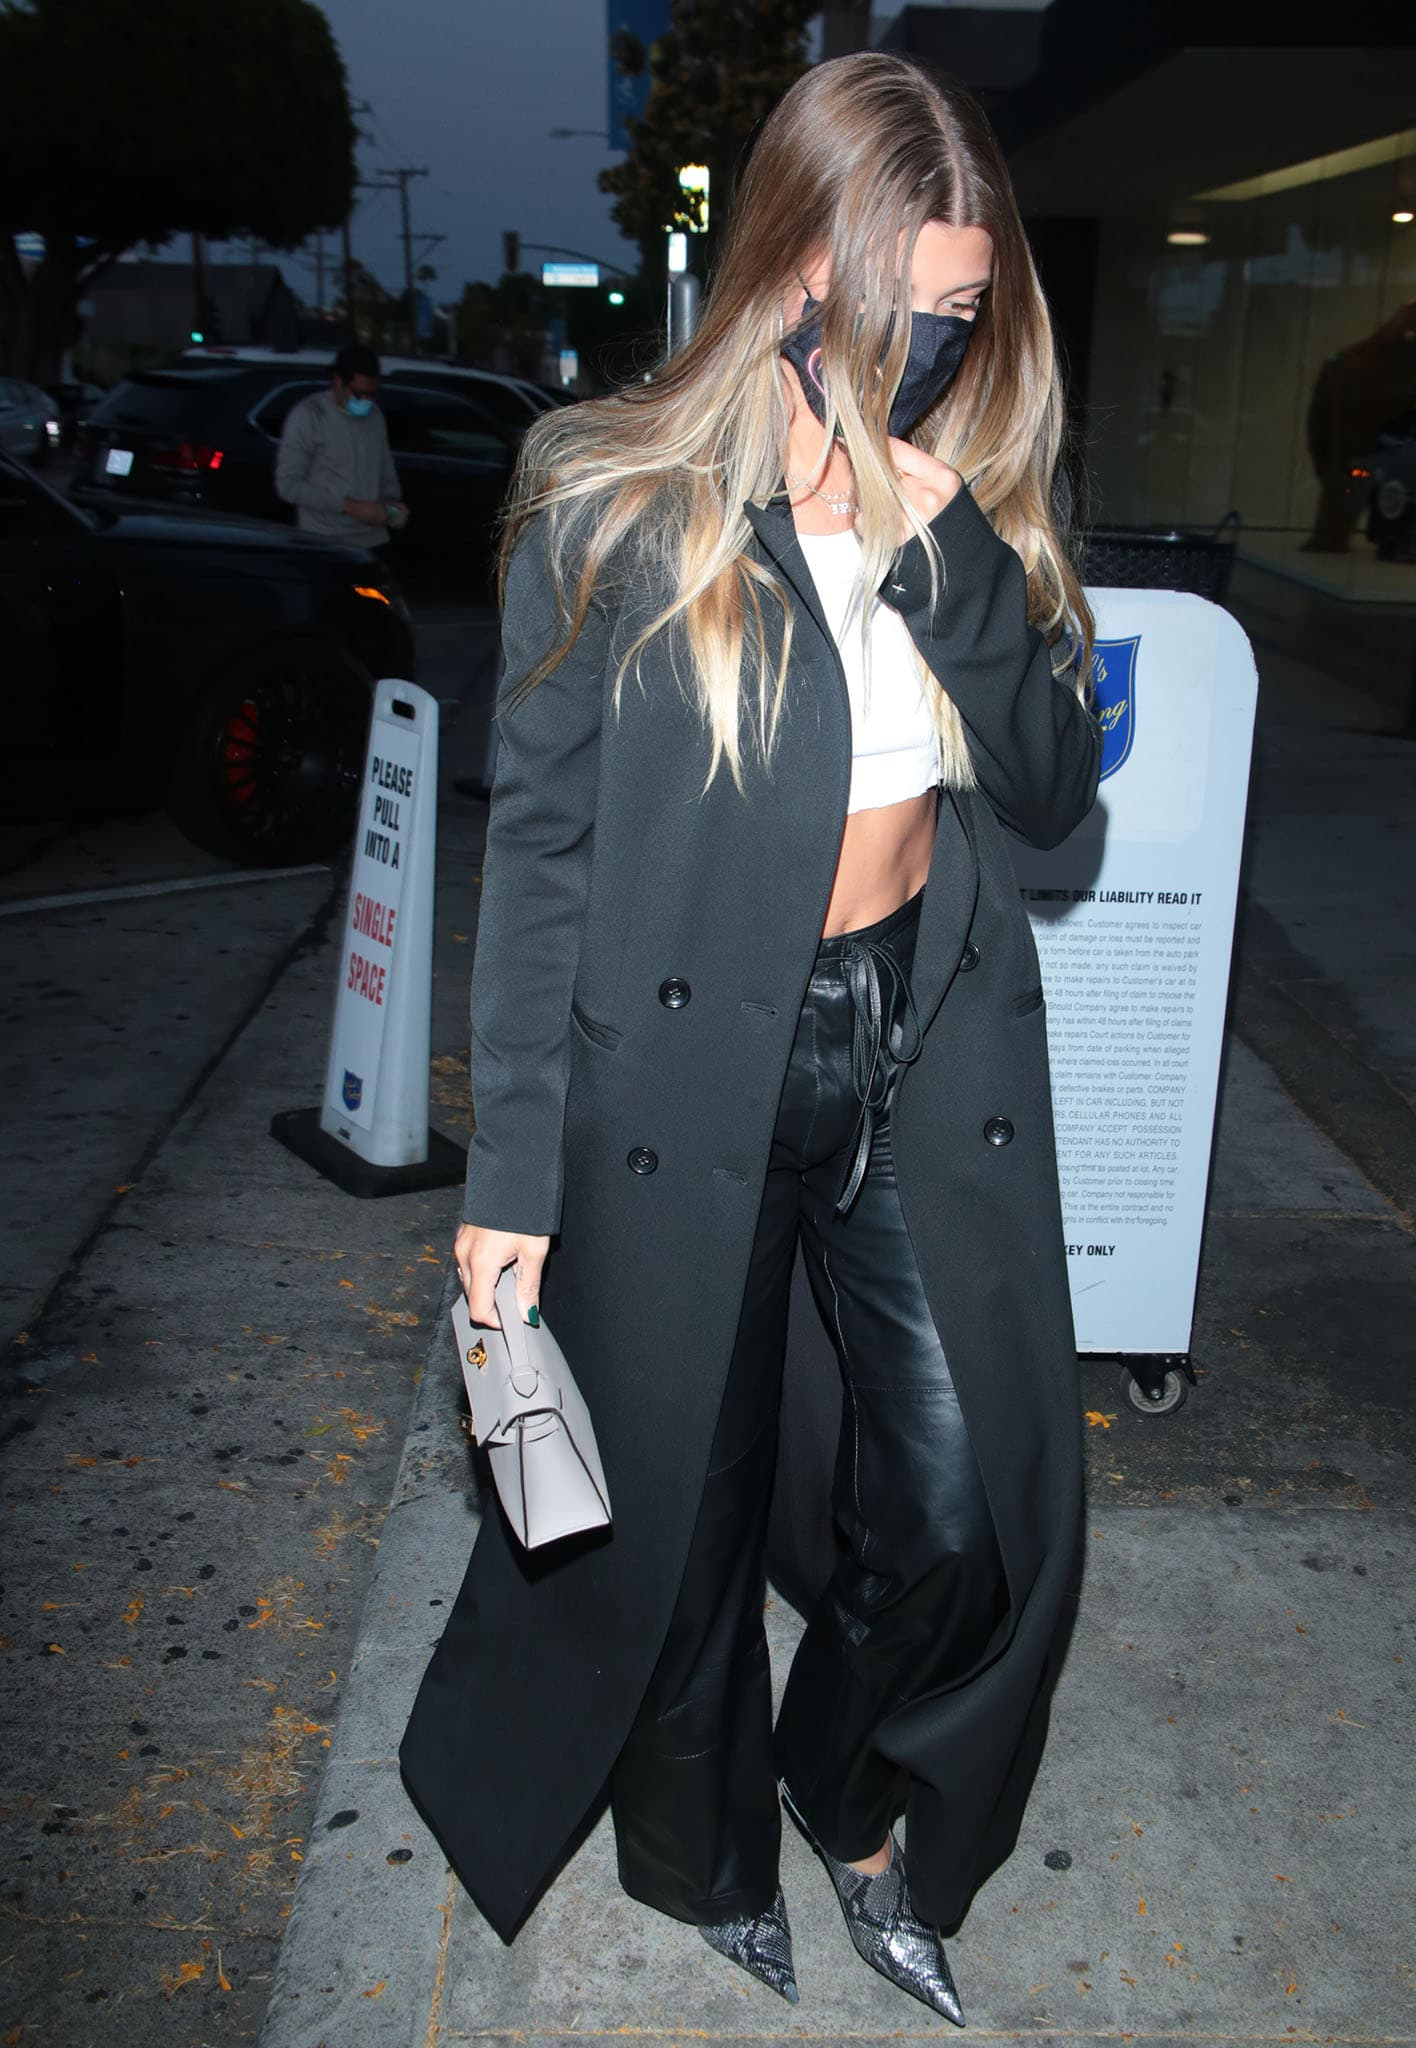 Sofia Richie steps out for a date night with new boyfriend Elliot Grainge at Craig's in West Hollywood on May 19, 2021